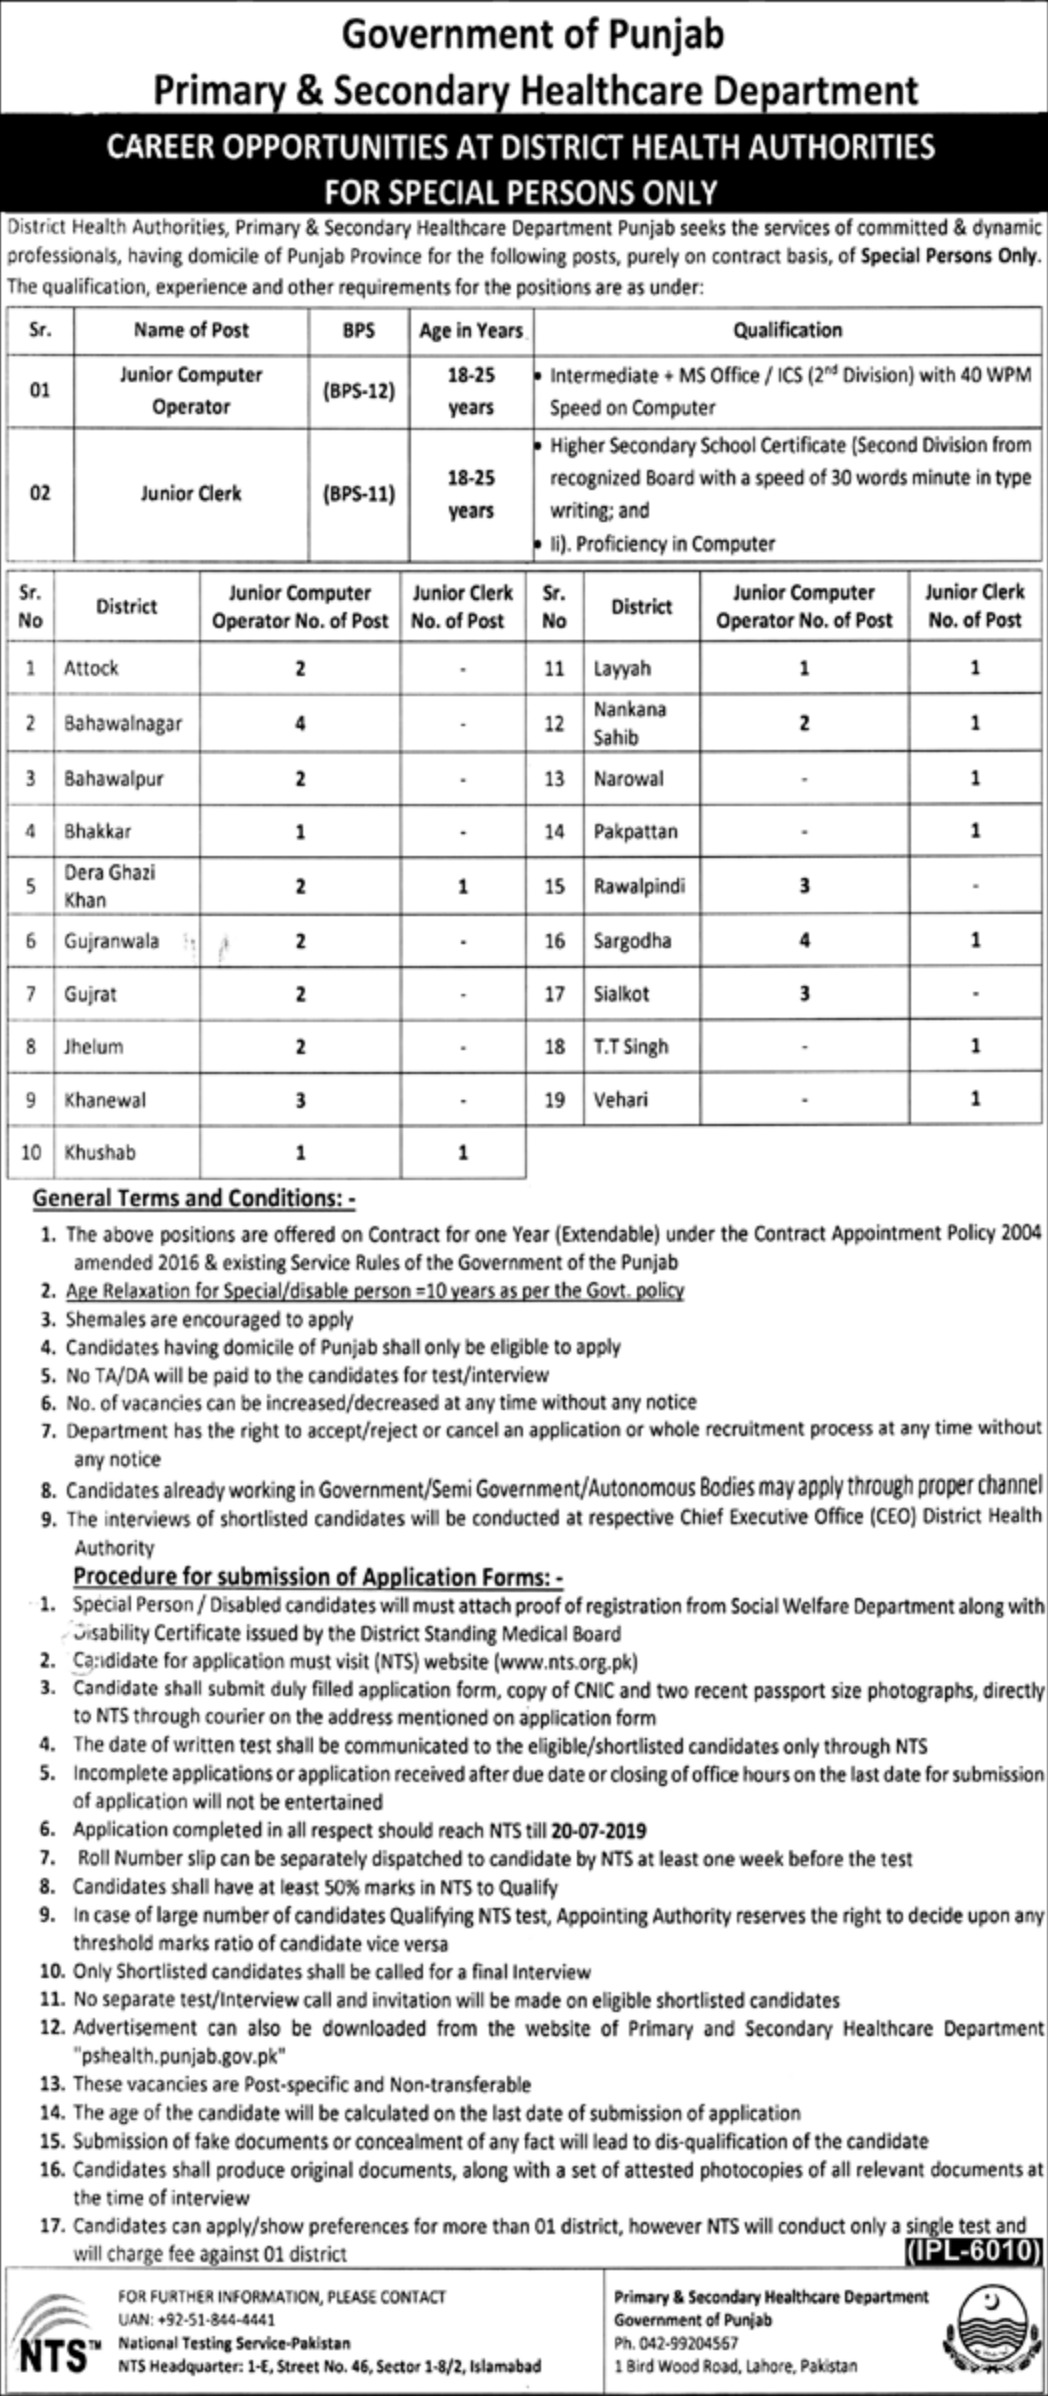 NTS Primary & Secondary Healthcare Department Jobs 2019 Application form Eligibility Criteria